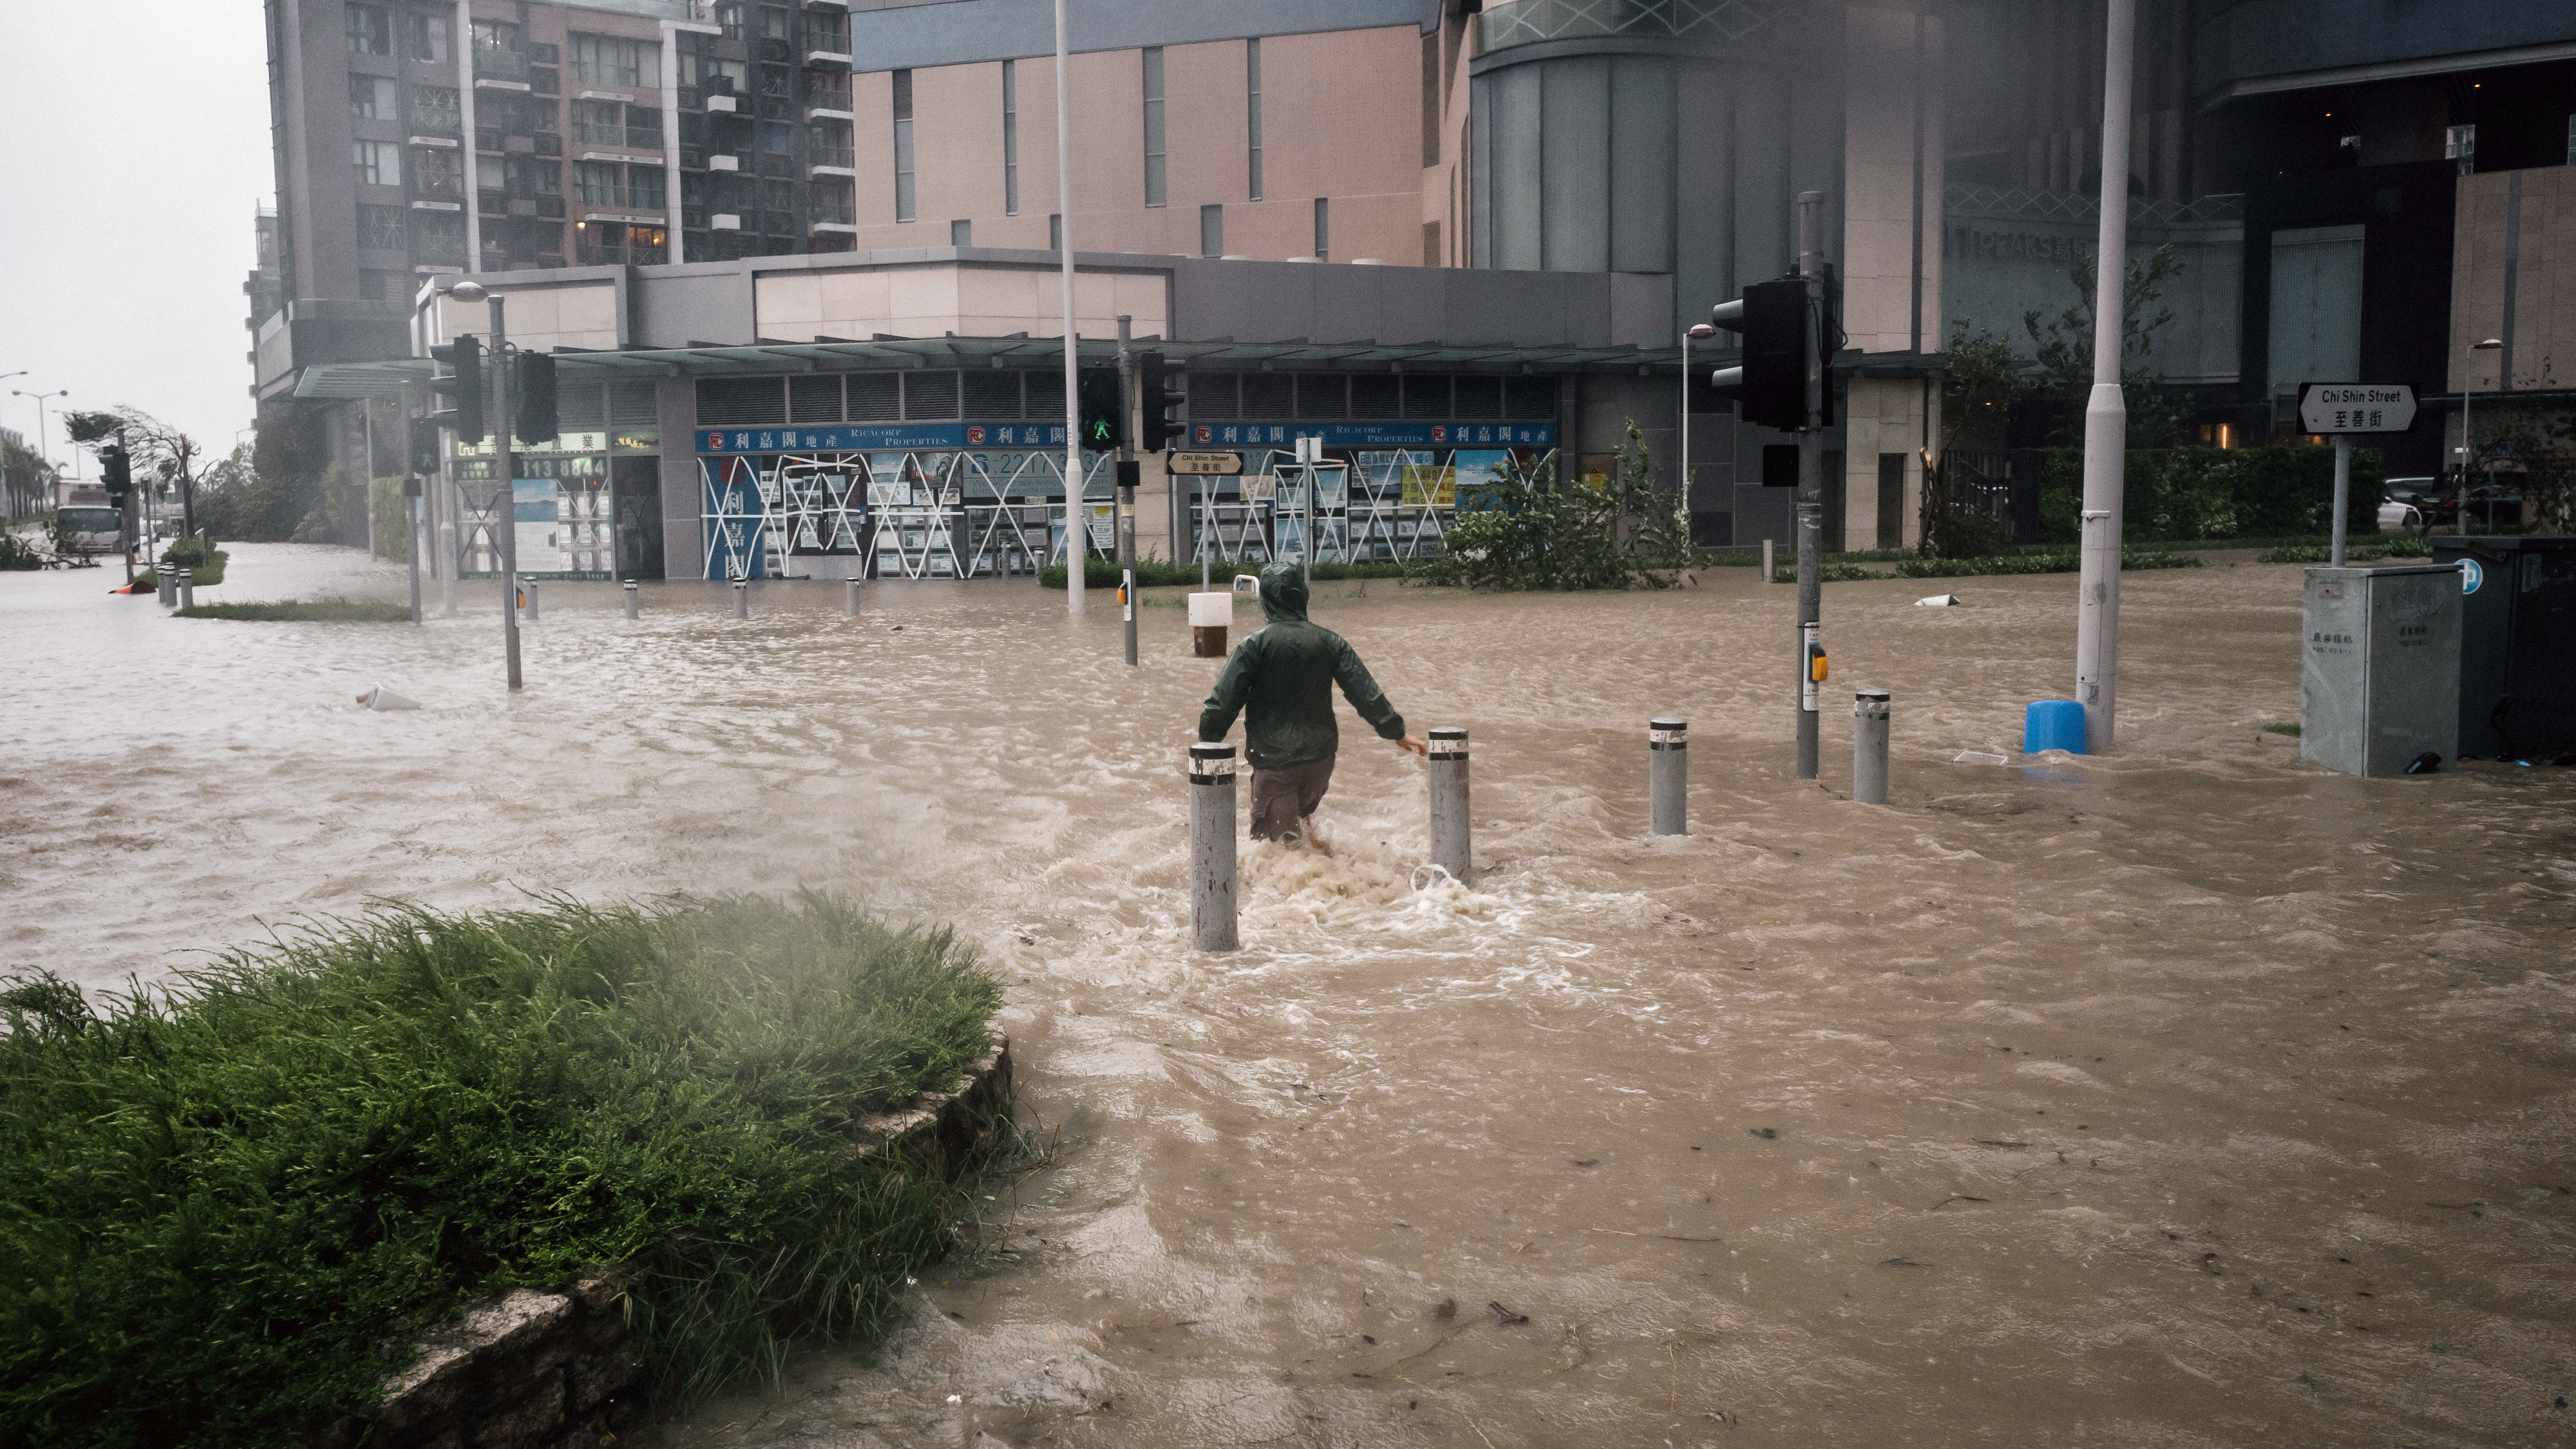 A man wades through flooded streets during a No. 10 Hurricane Signal raised for Typhoon Mangkhut in Hong Kong on Sunday.